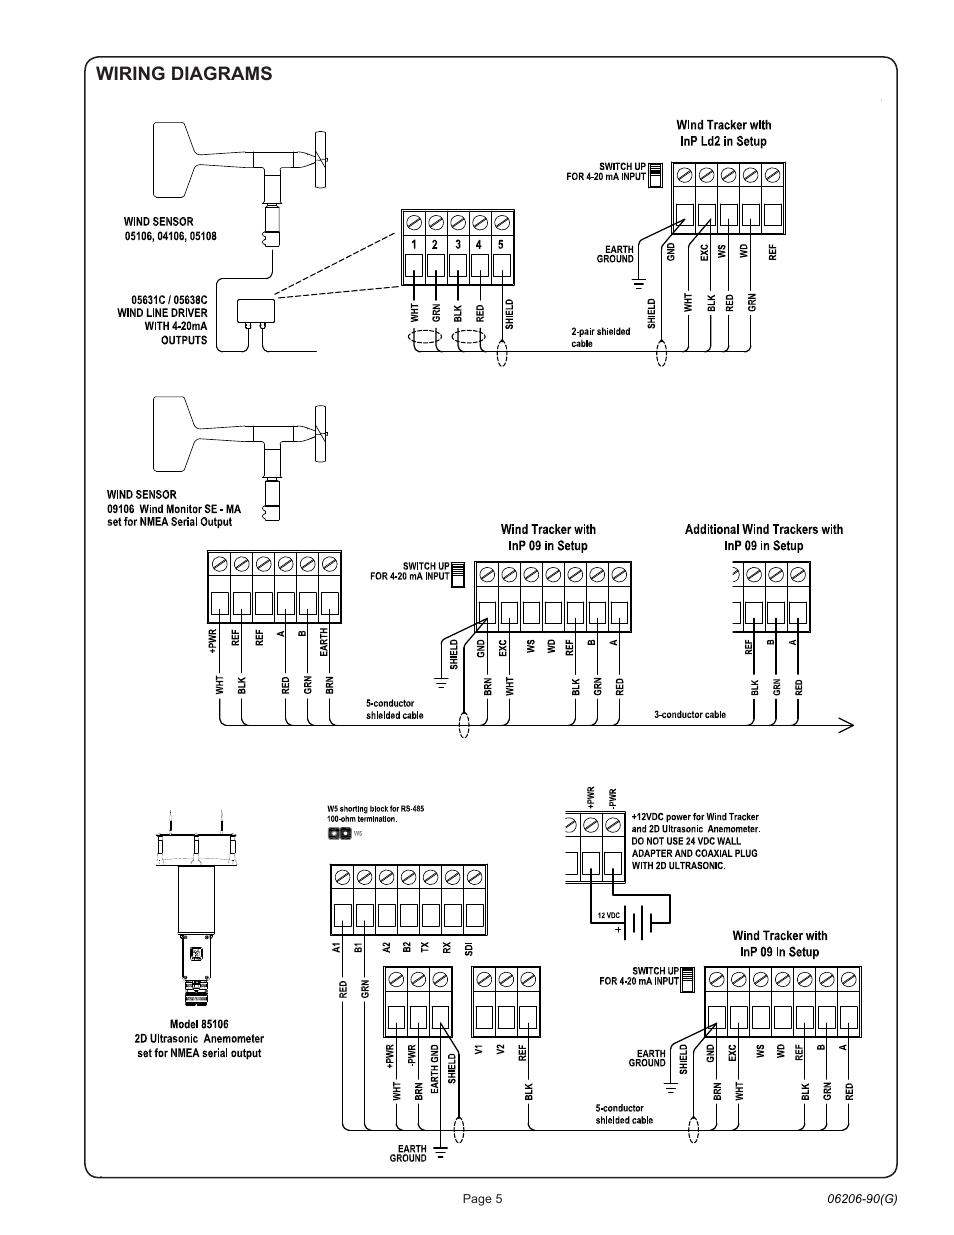 Wiring Diagrams Young Marine Wind Tracker Model 06206